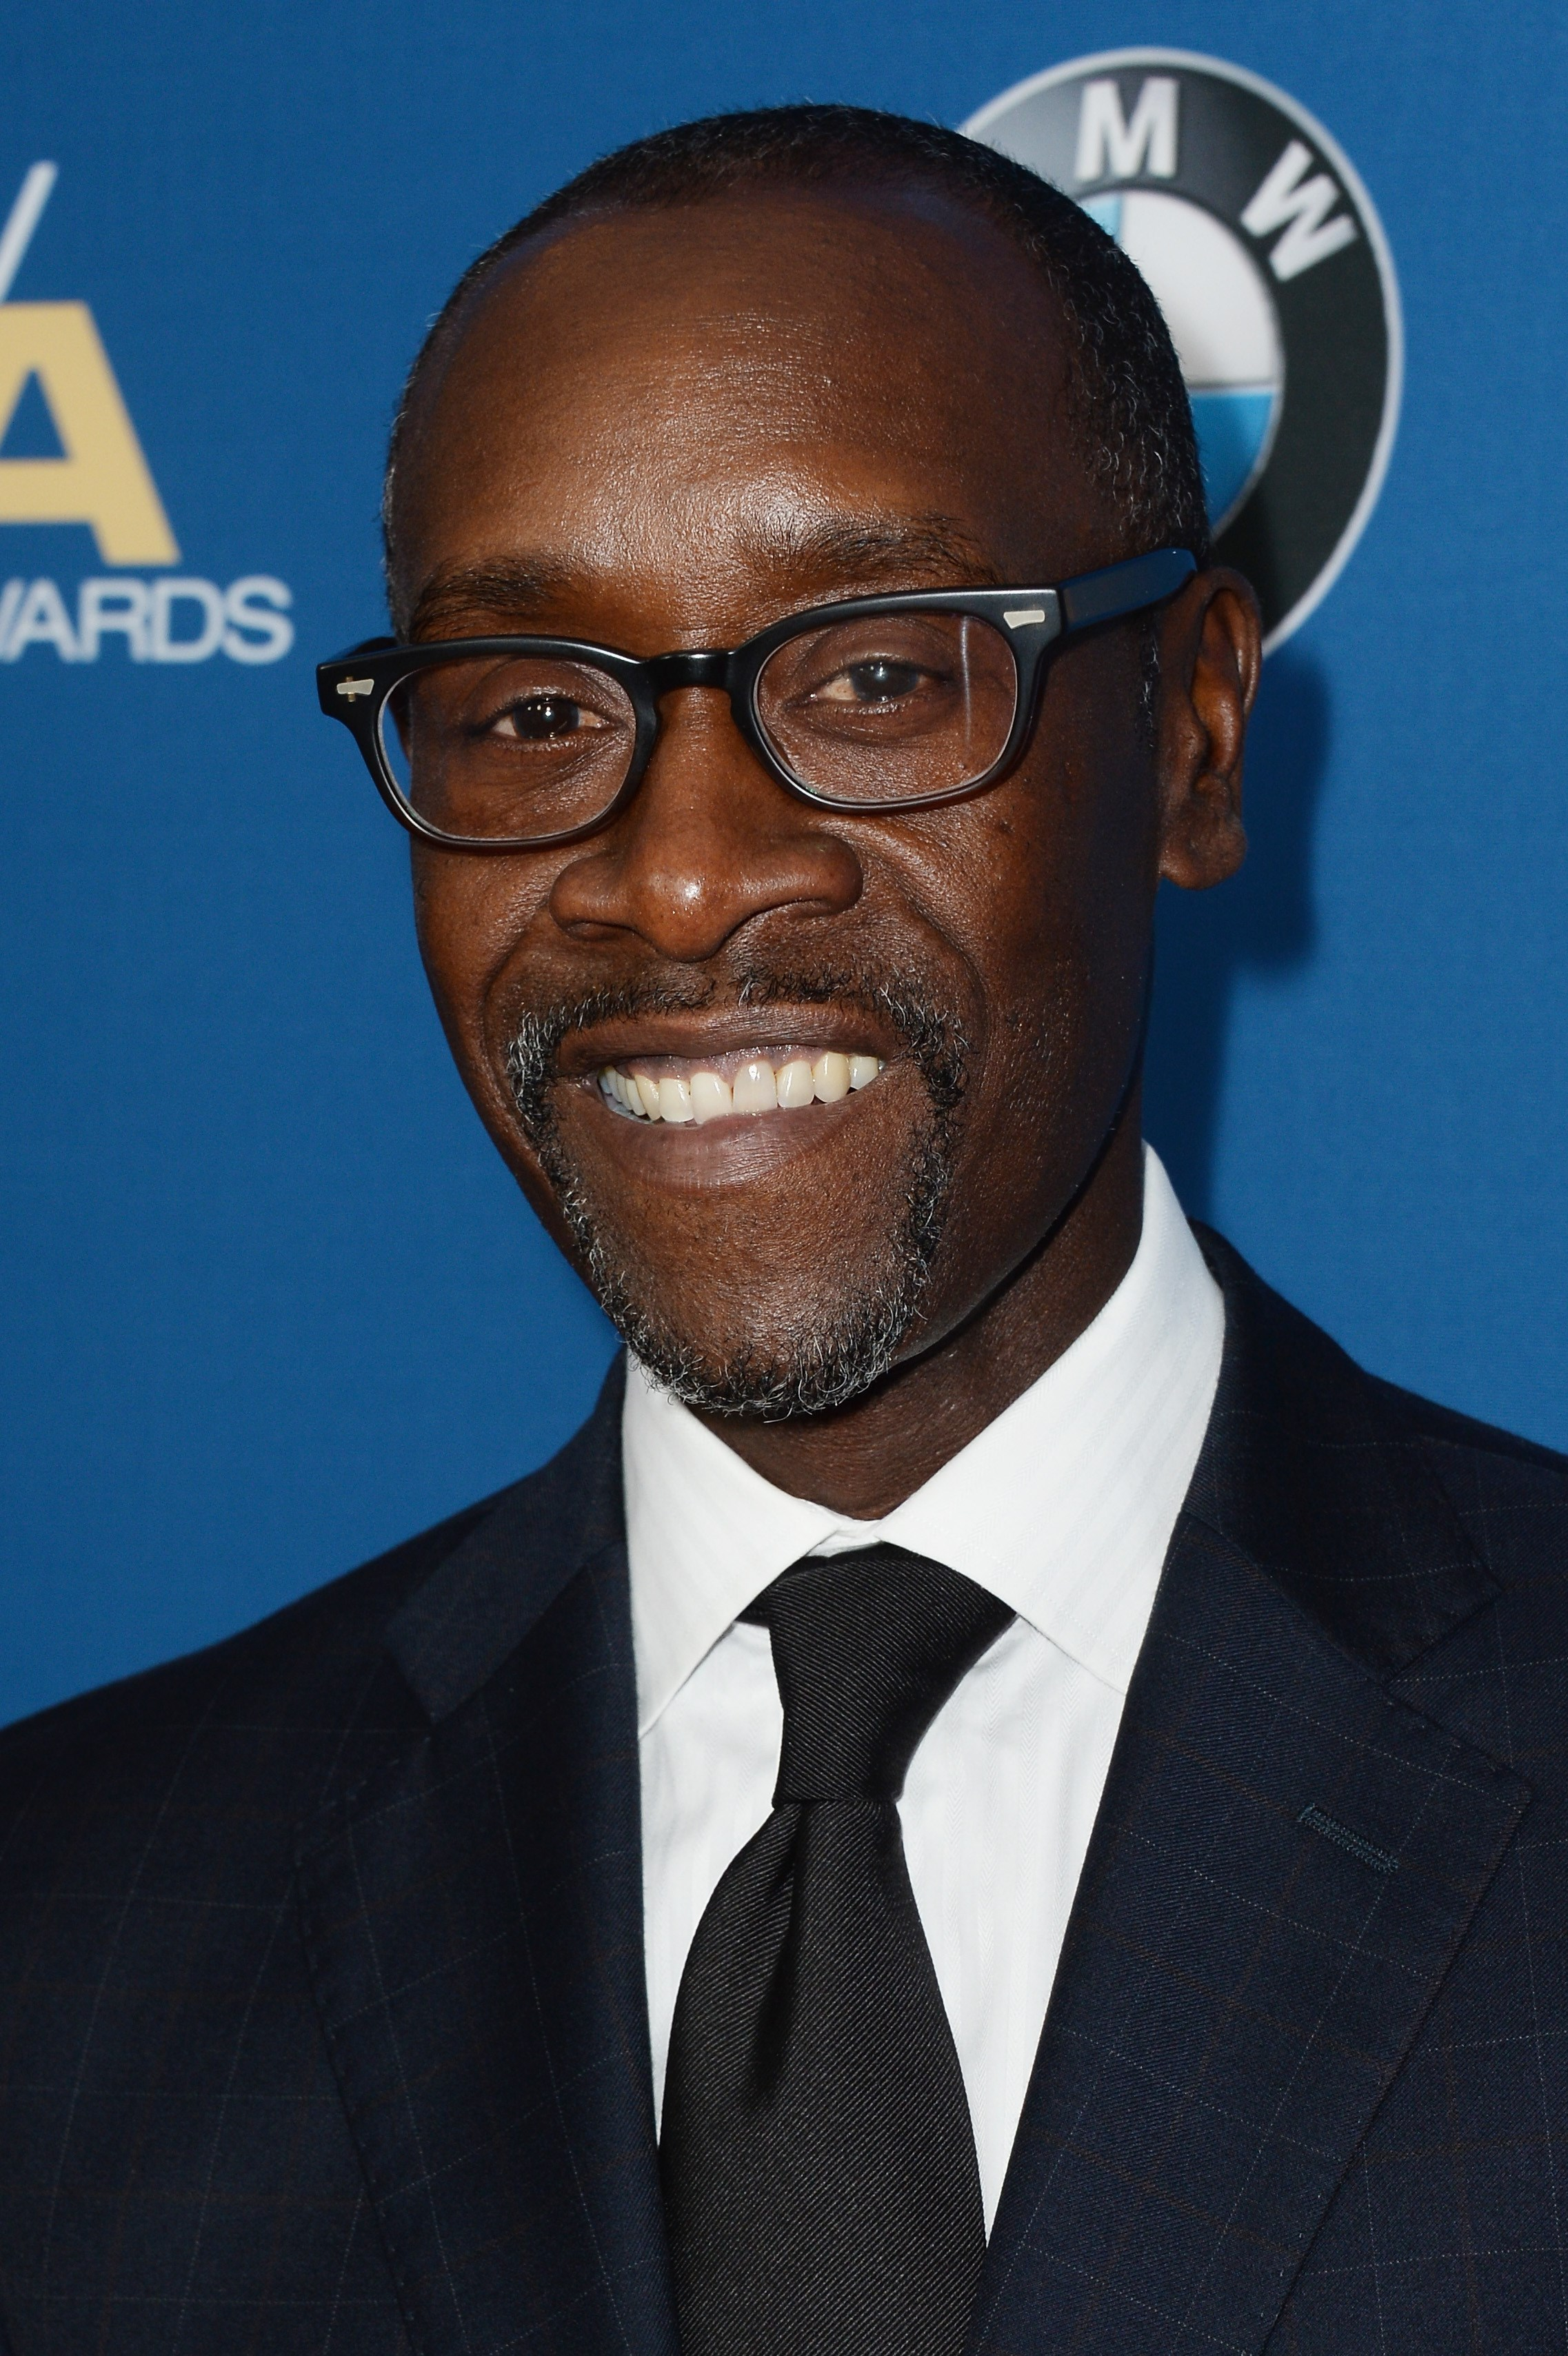 Don Cheadle | Known people - famous people news and ...